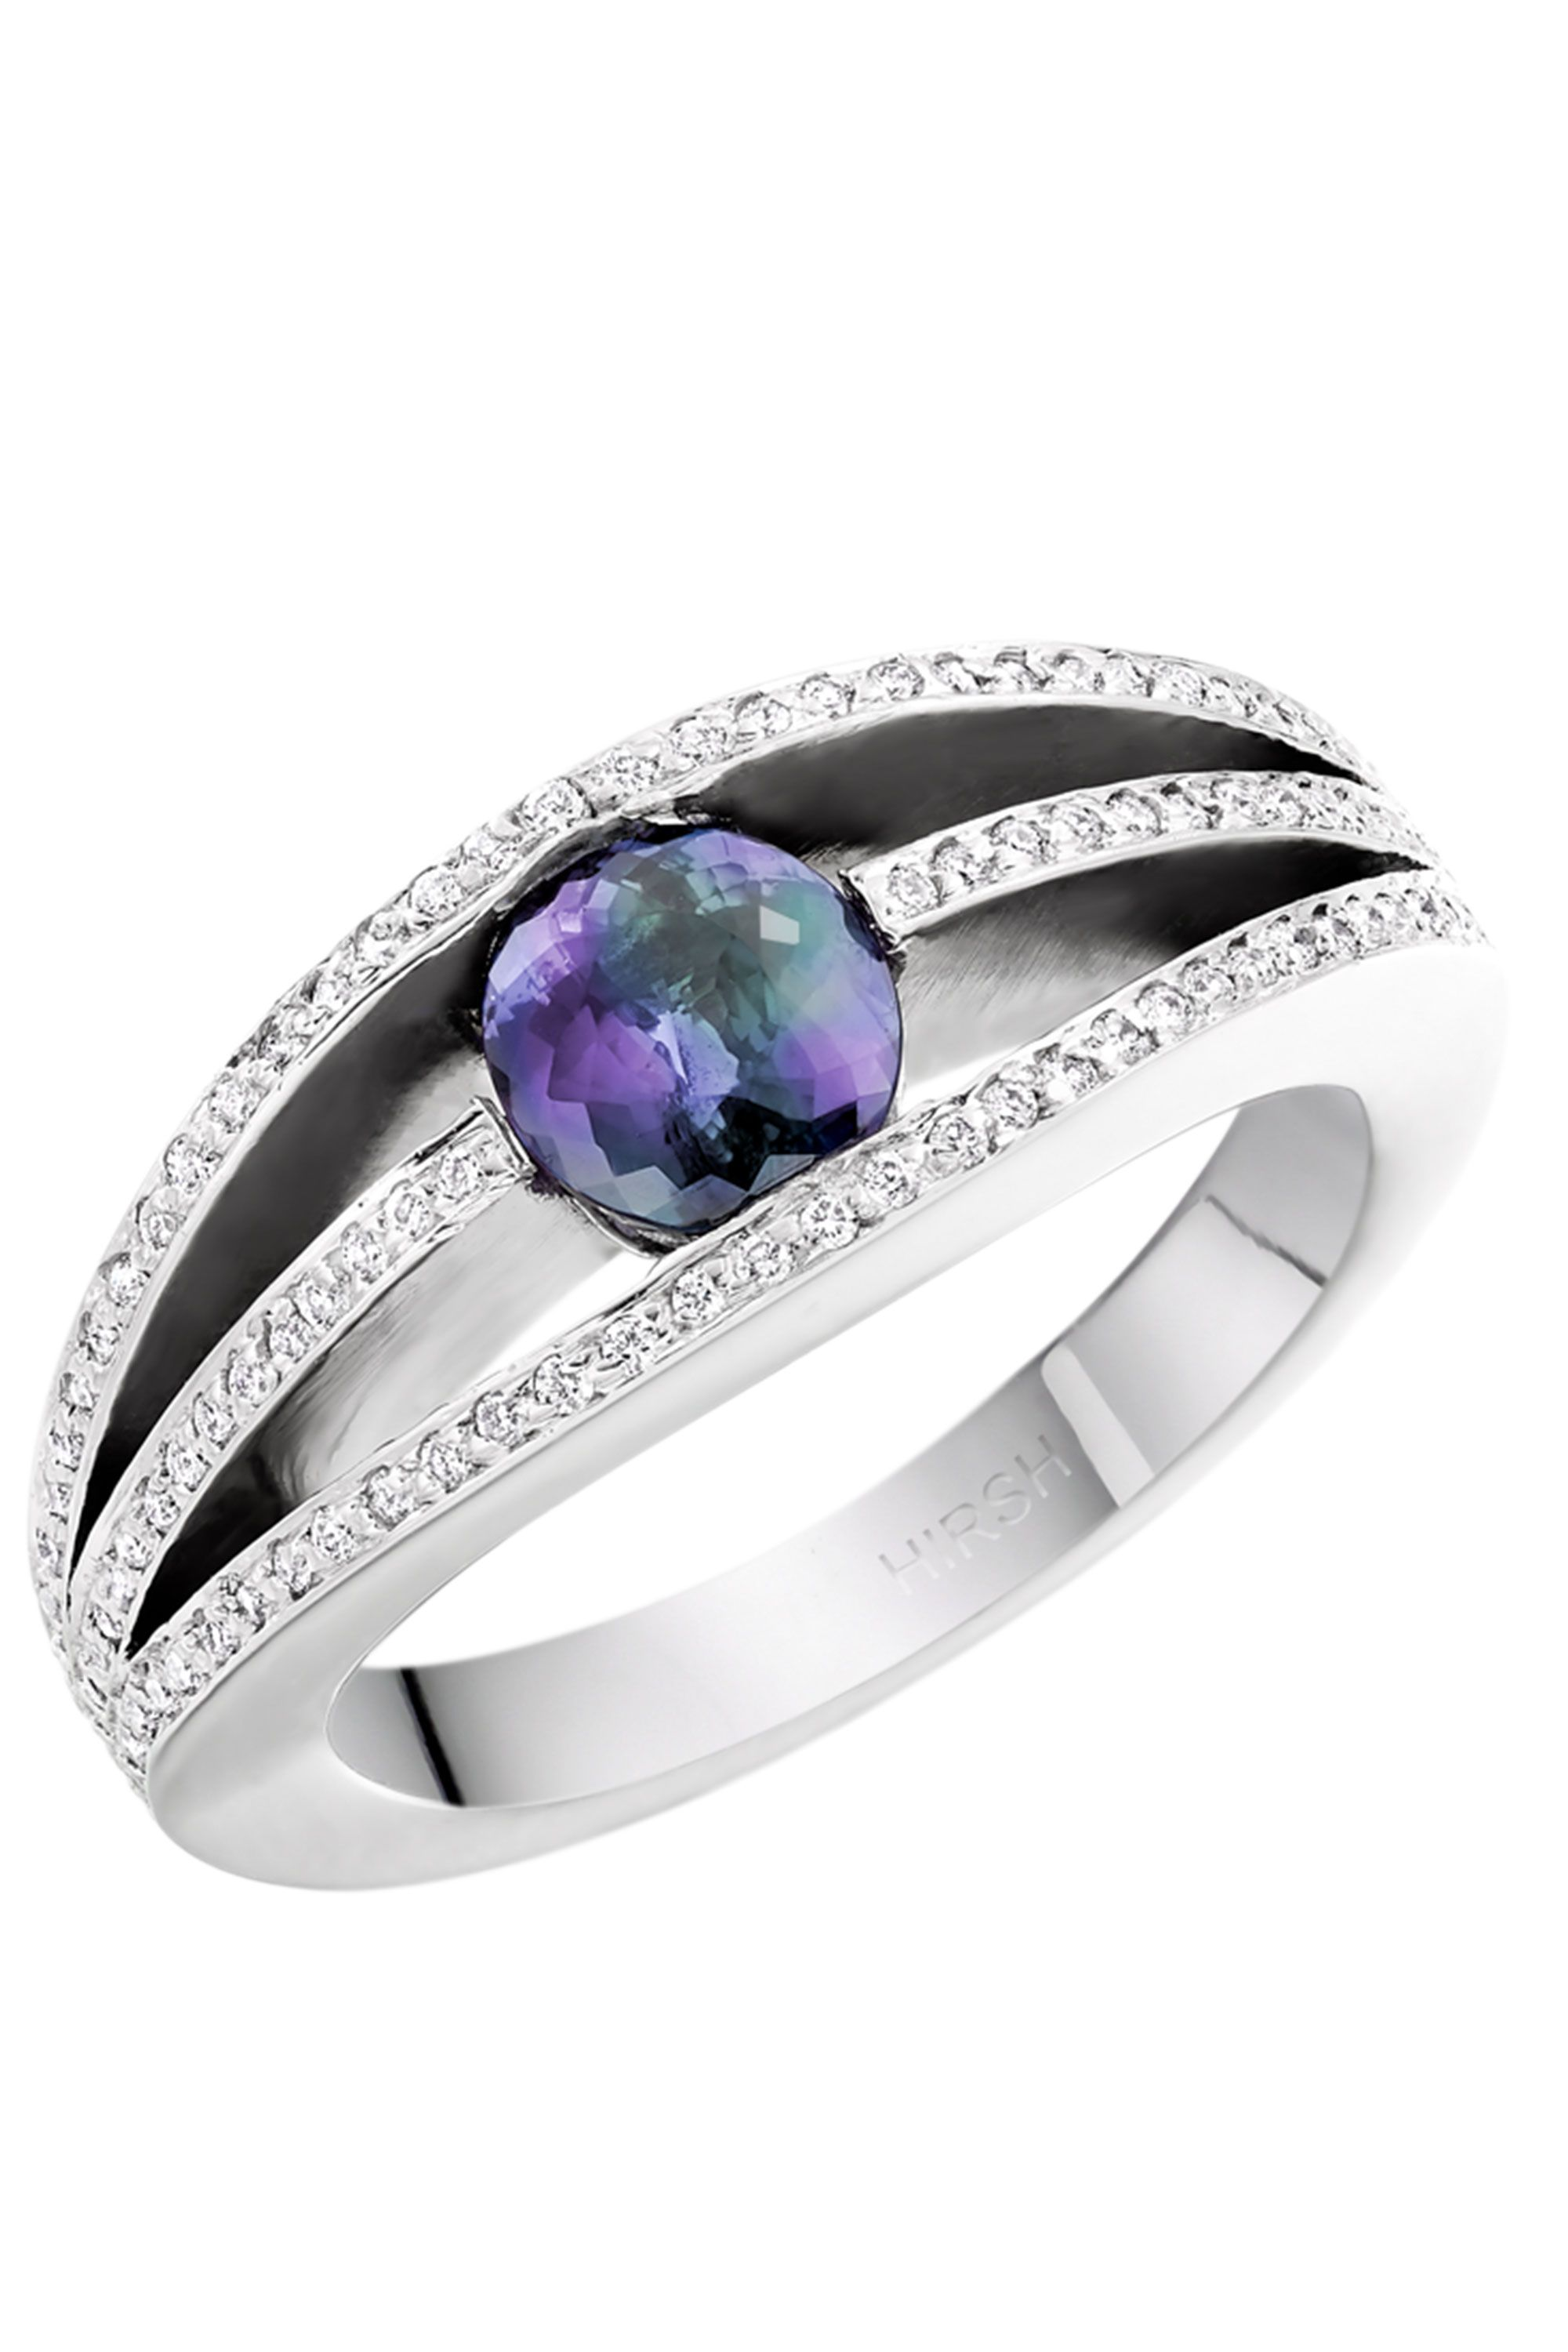 and ritani gemstone blue blog of colored sapphire meaning the wedding rings ring engagement